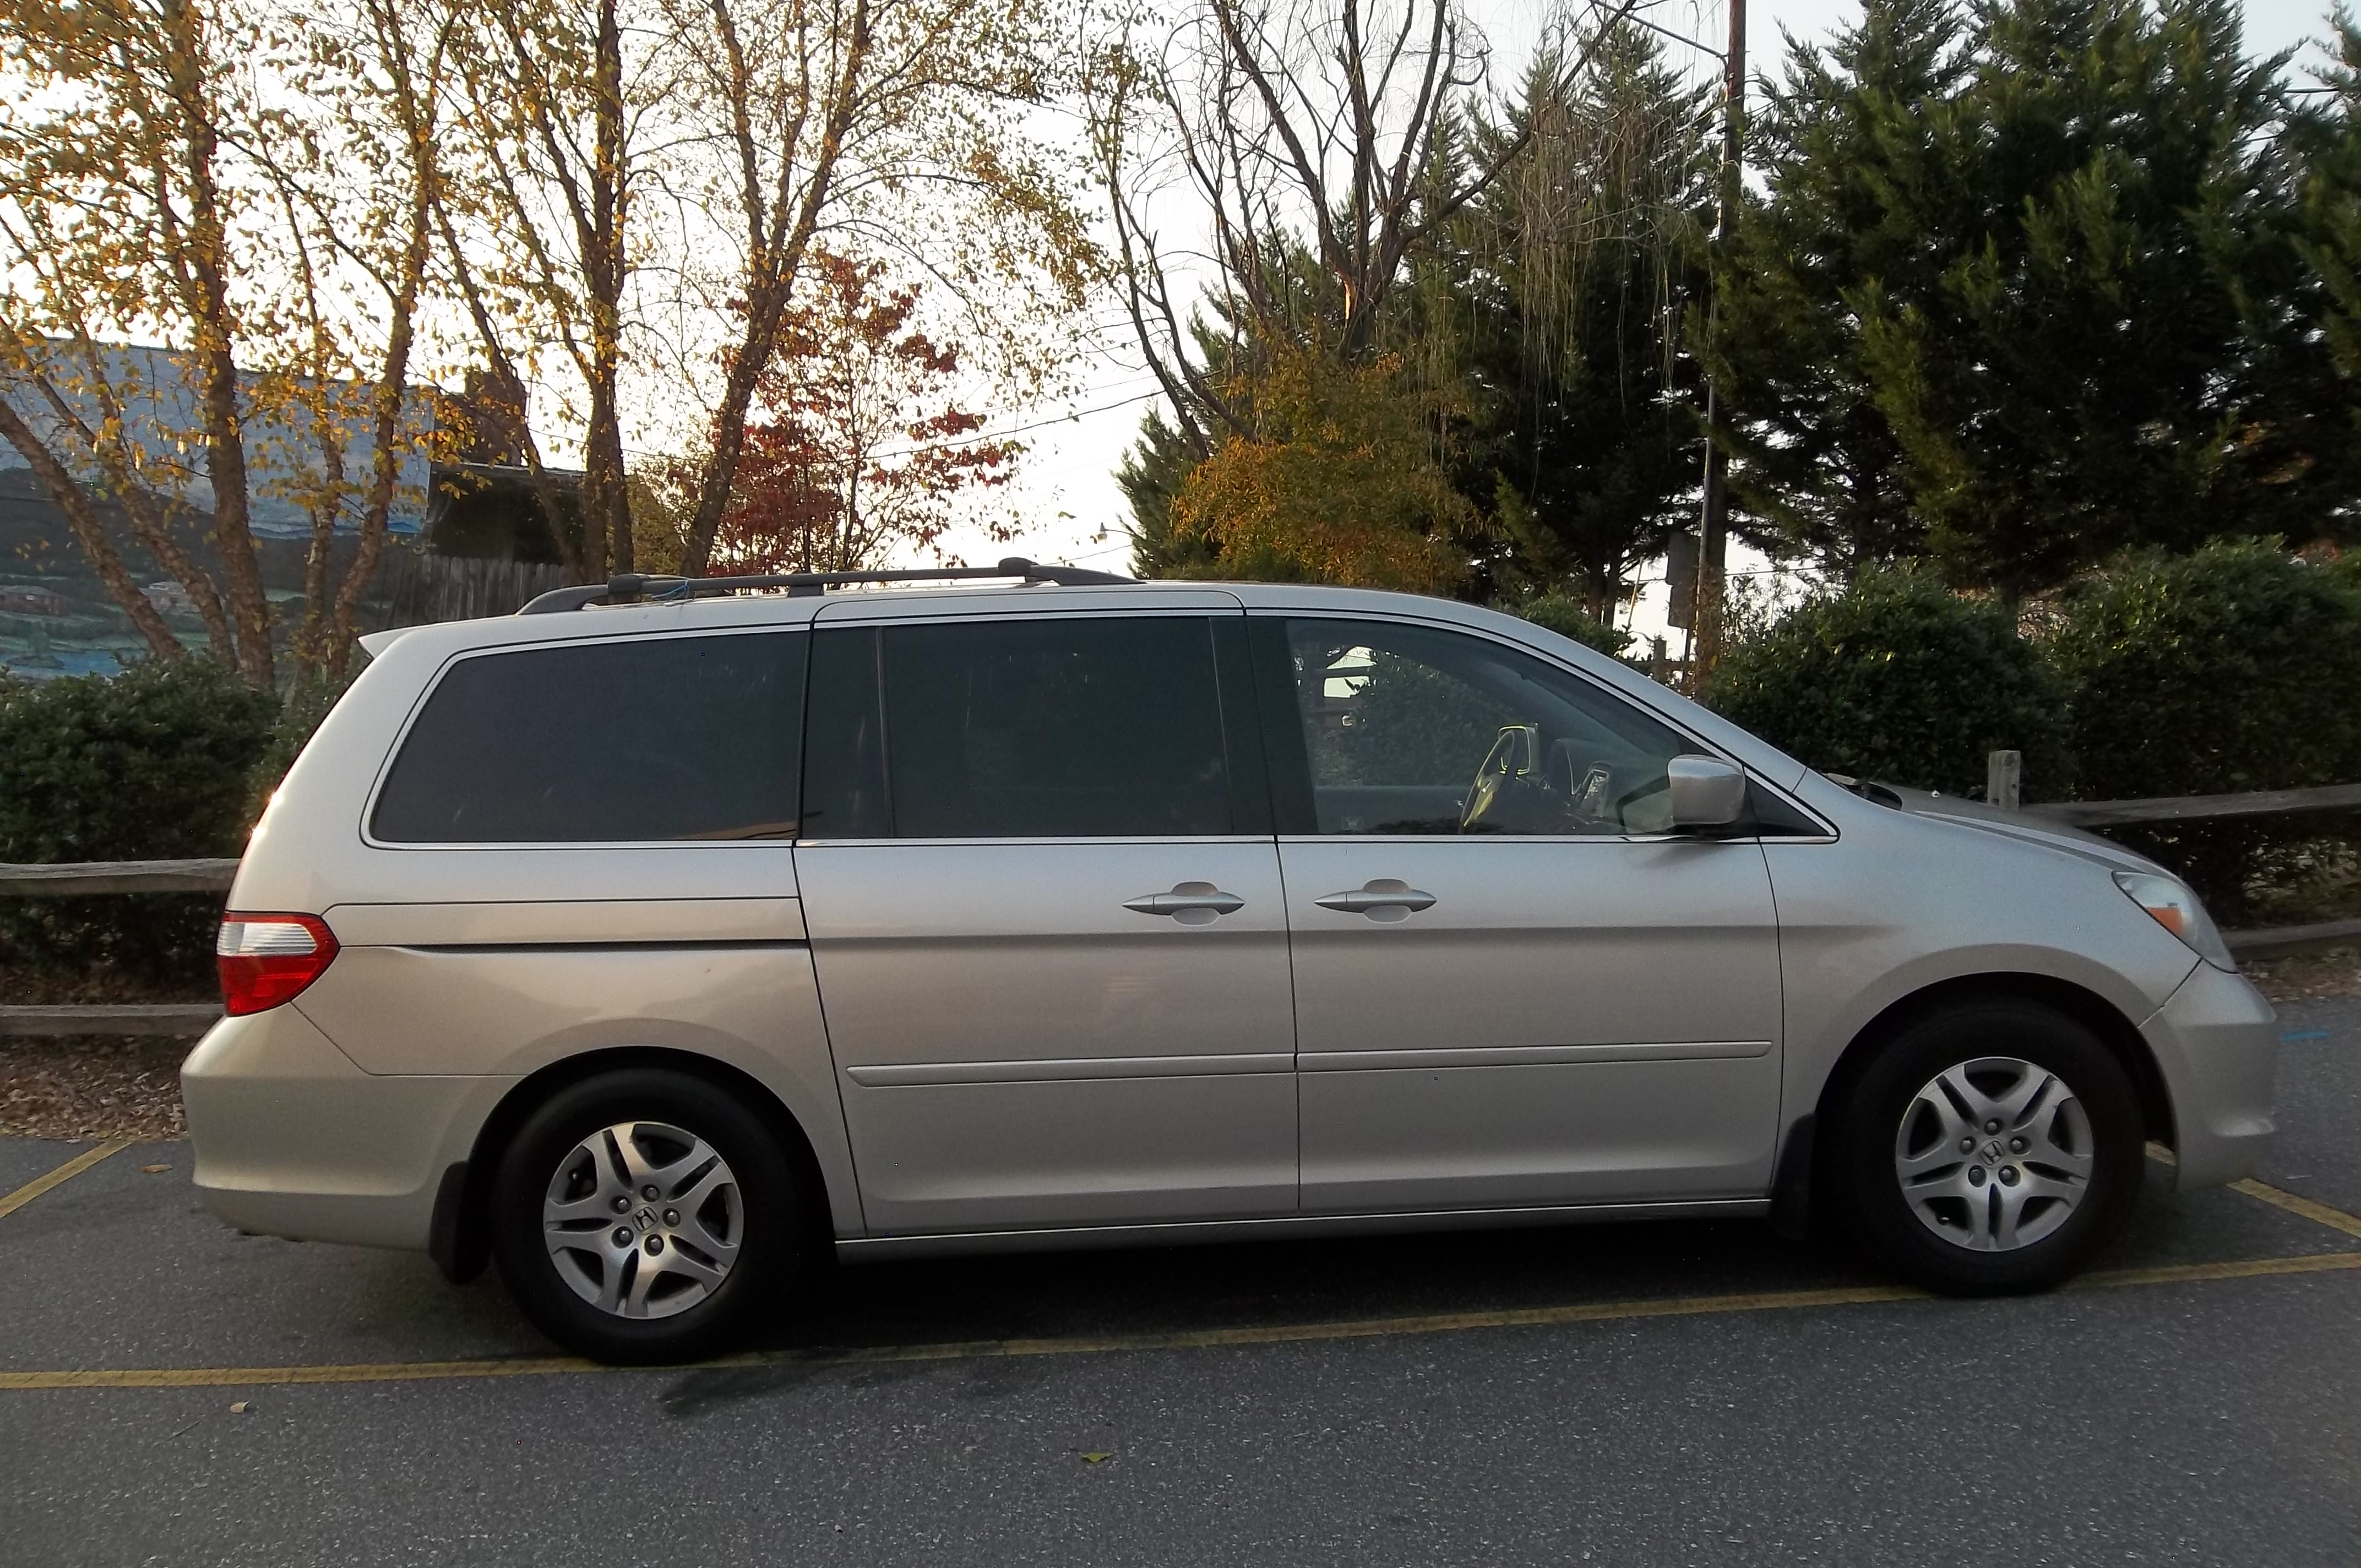 s forums issues uvnimg odyssey quality dyssey page com honda